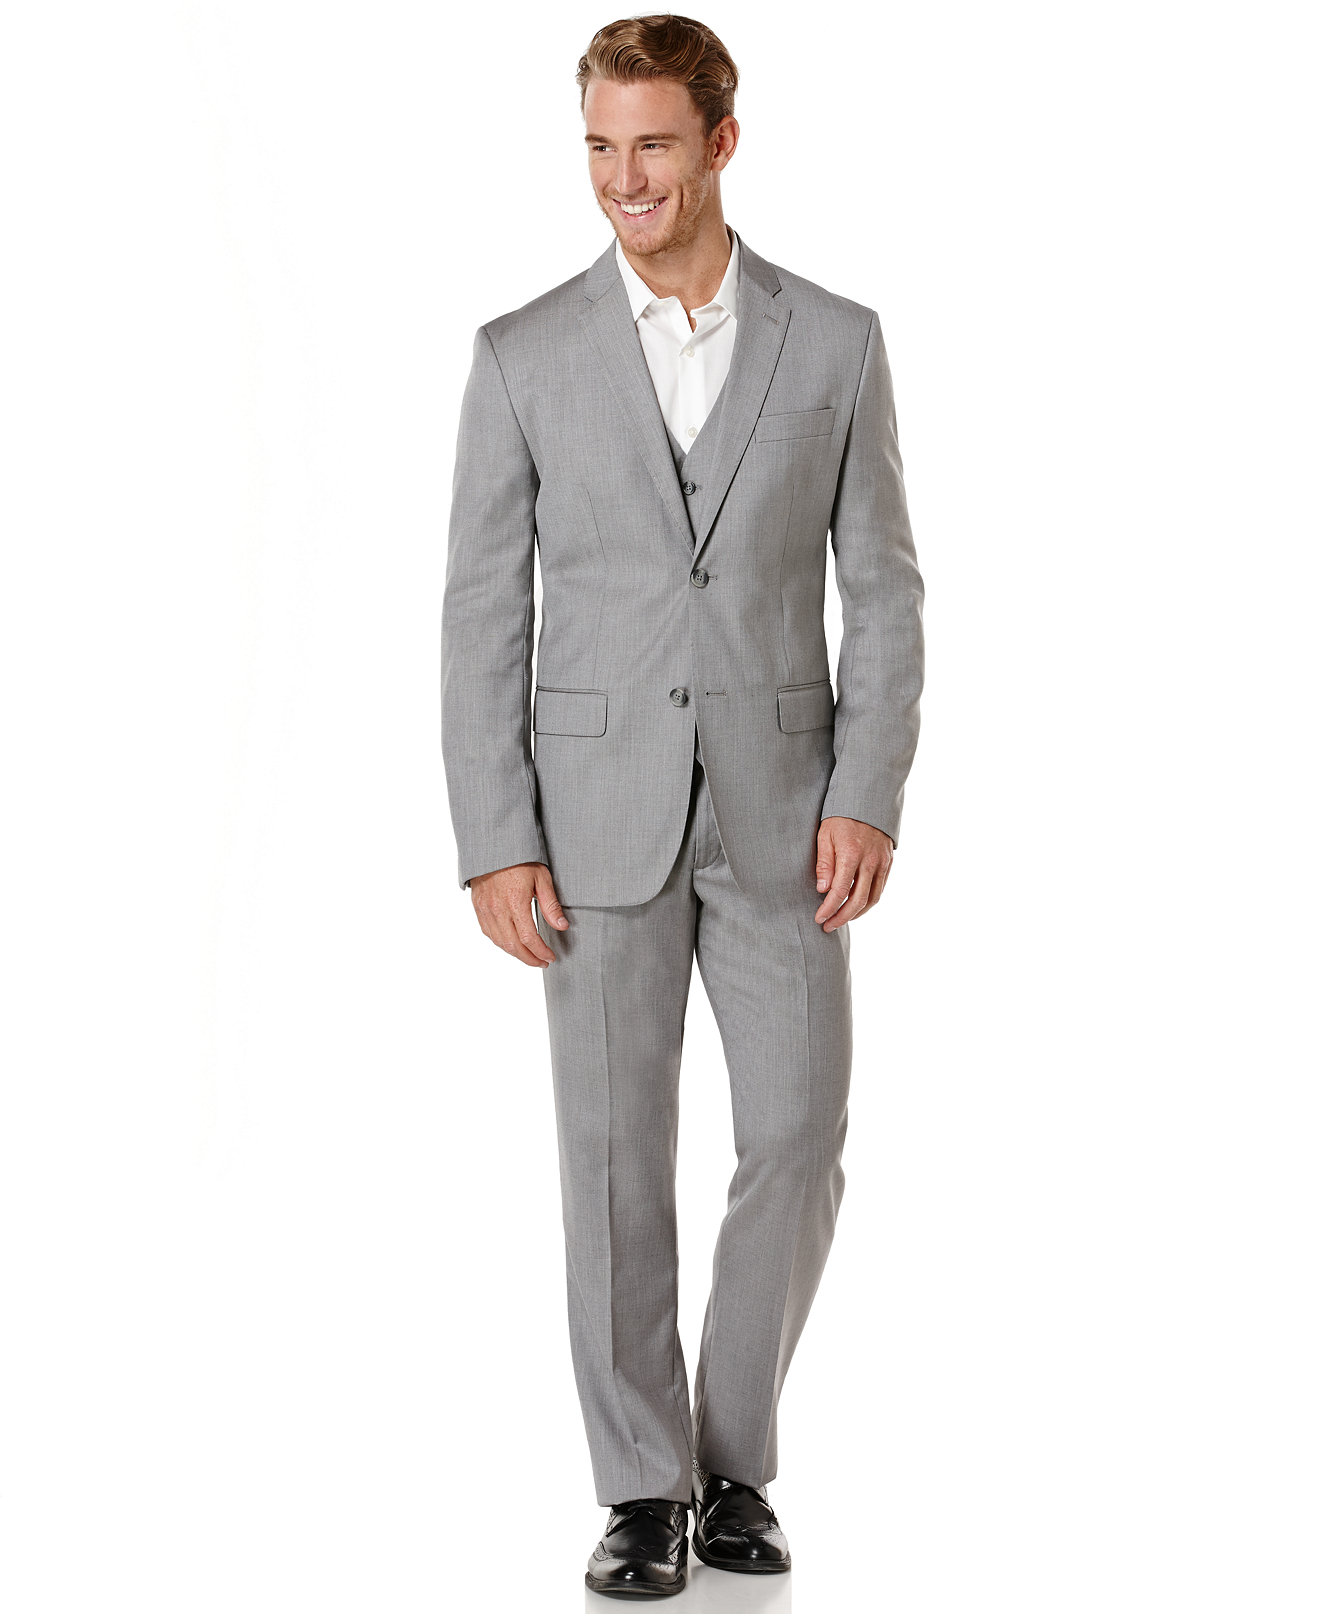 Perry Ellis Mens Clothing at Macy's - Mens Apparel - Macy's